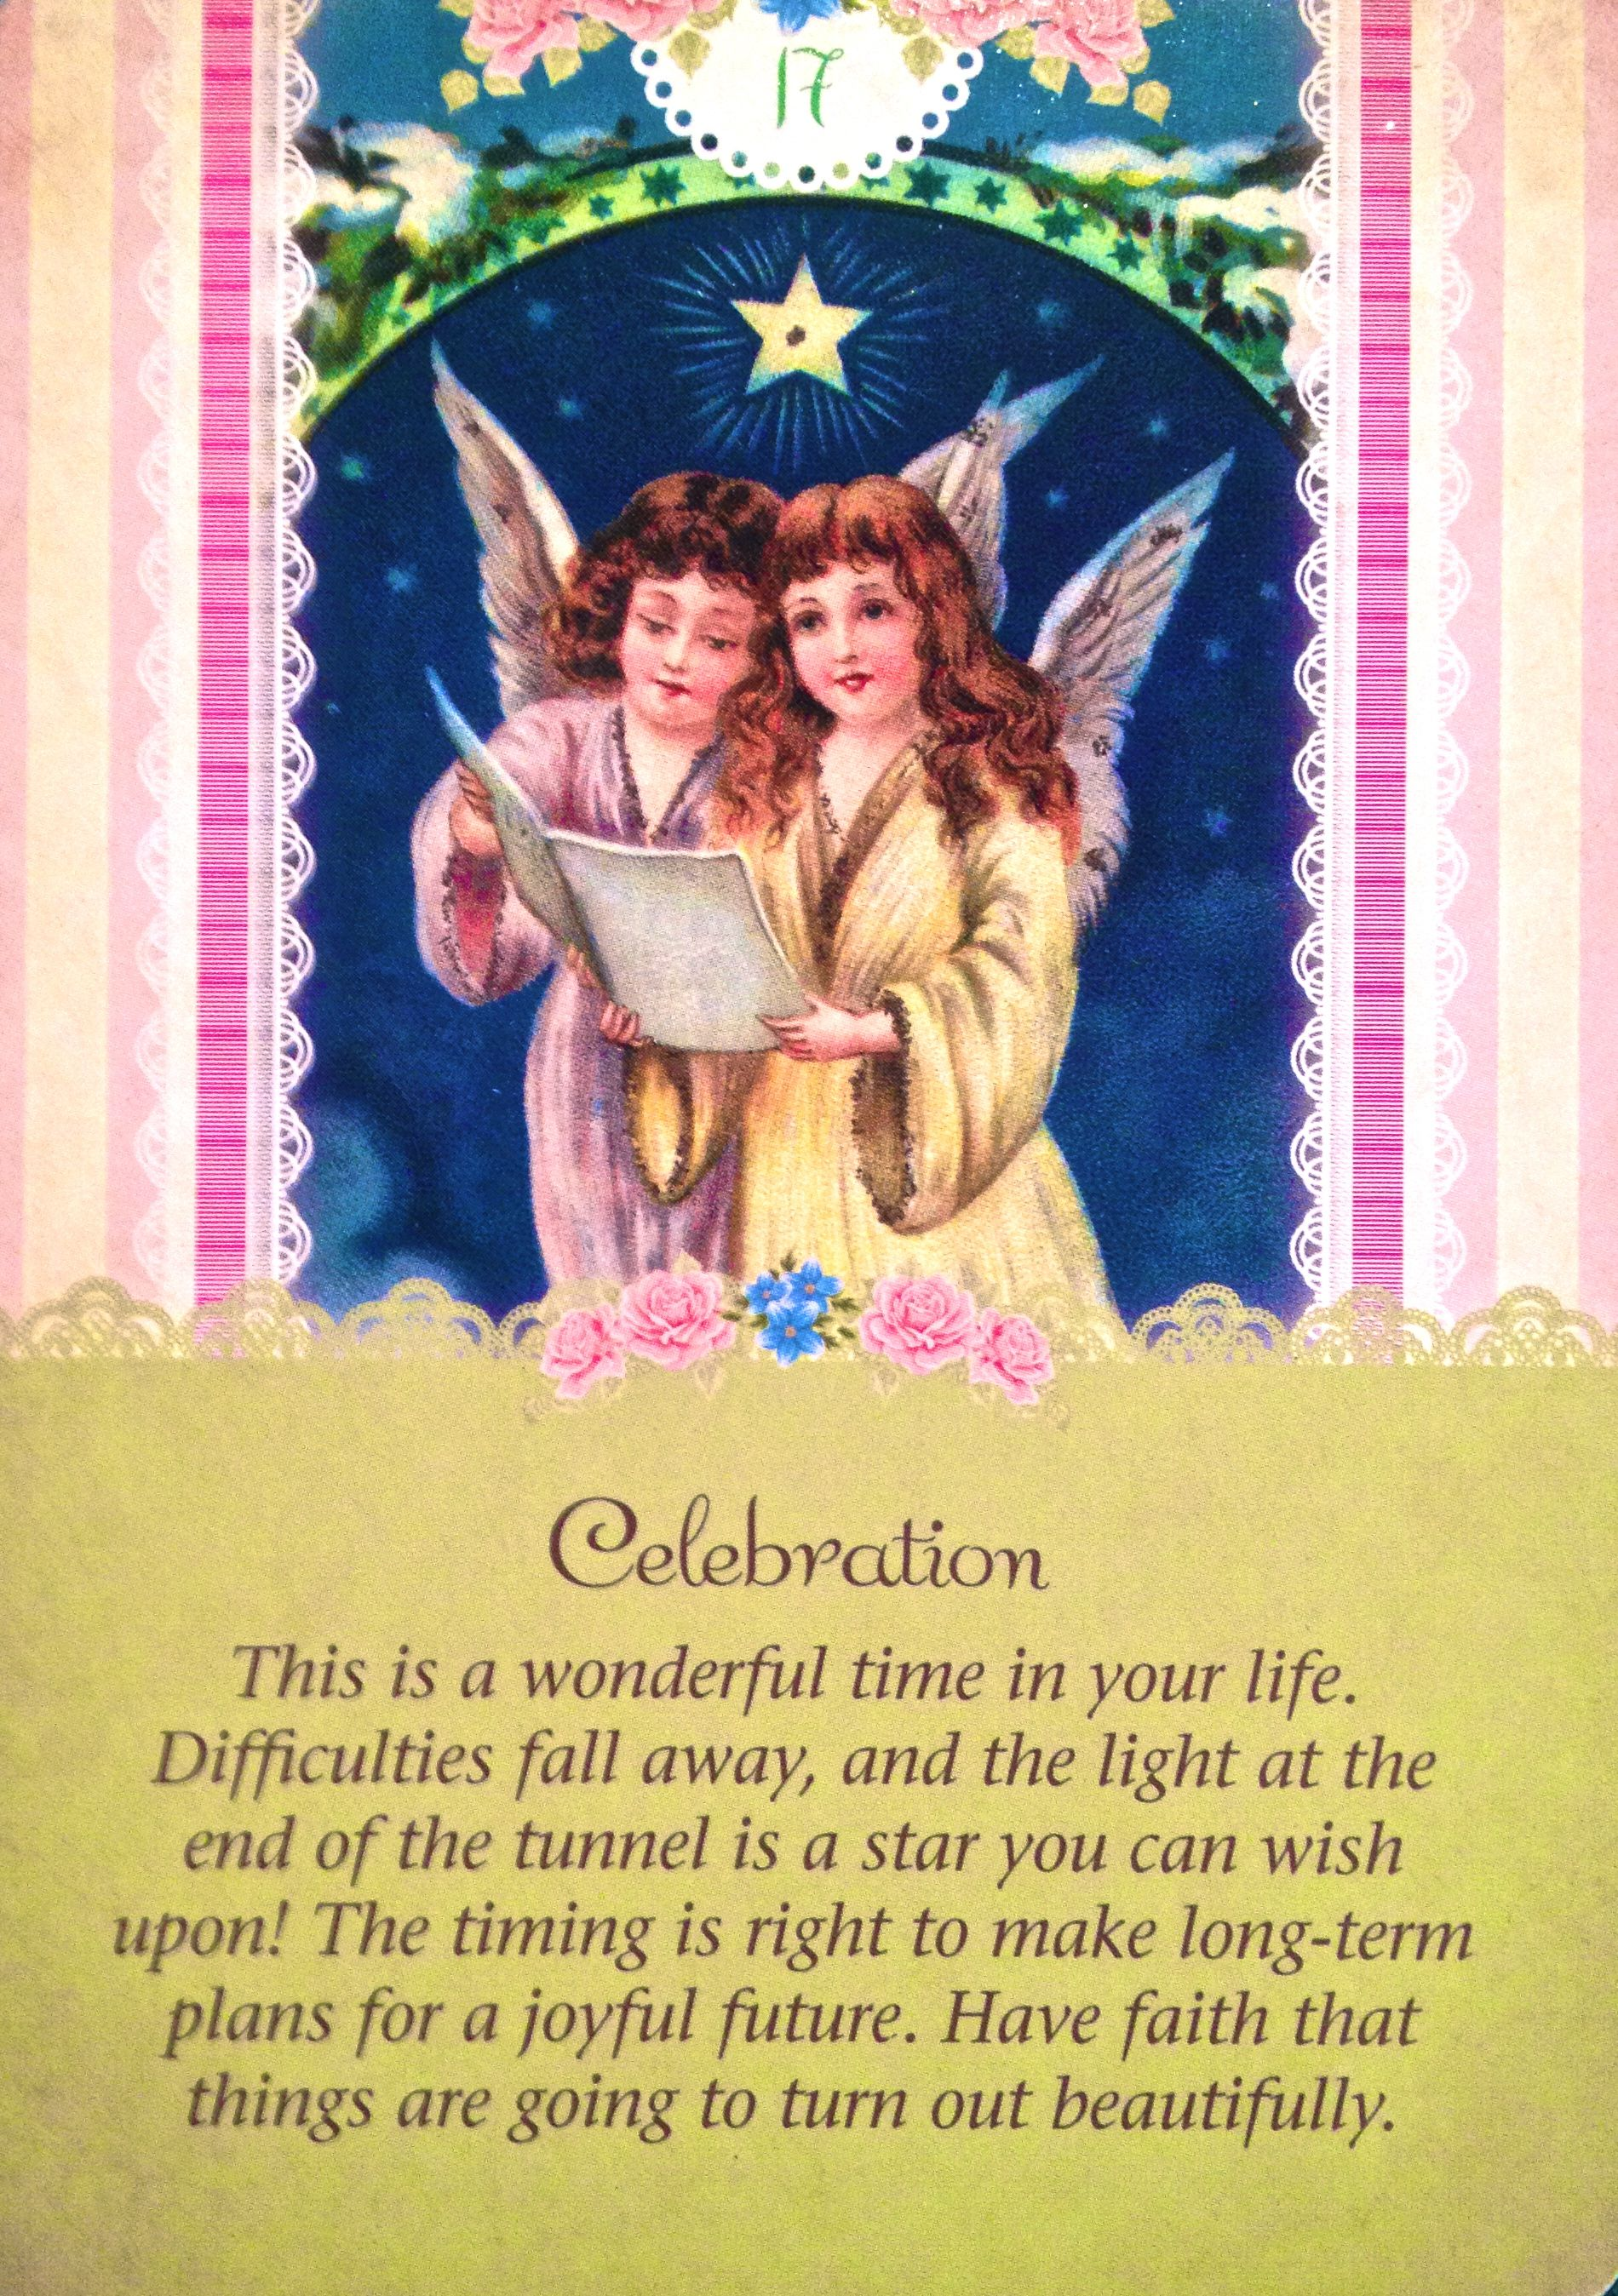 Daily Angel Oracle Card: Celebration, From The Guardian